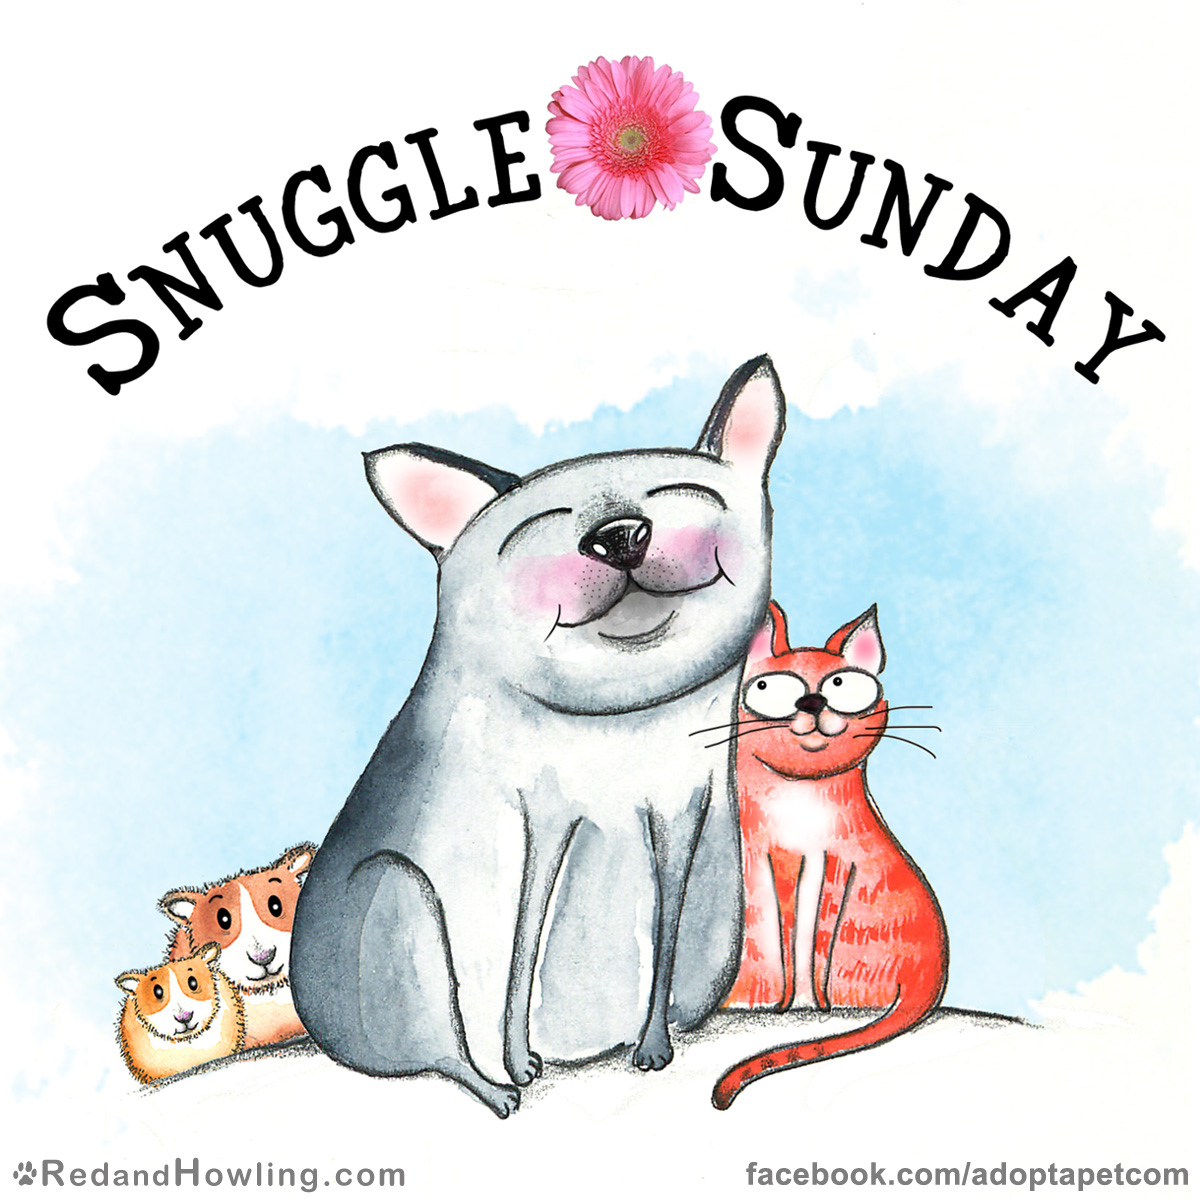 SnuggleSunday